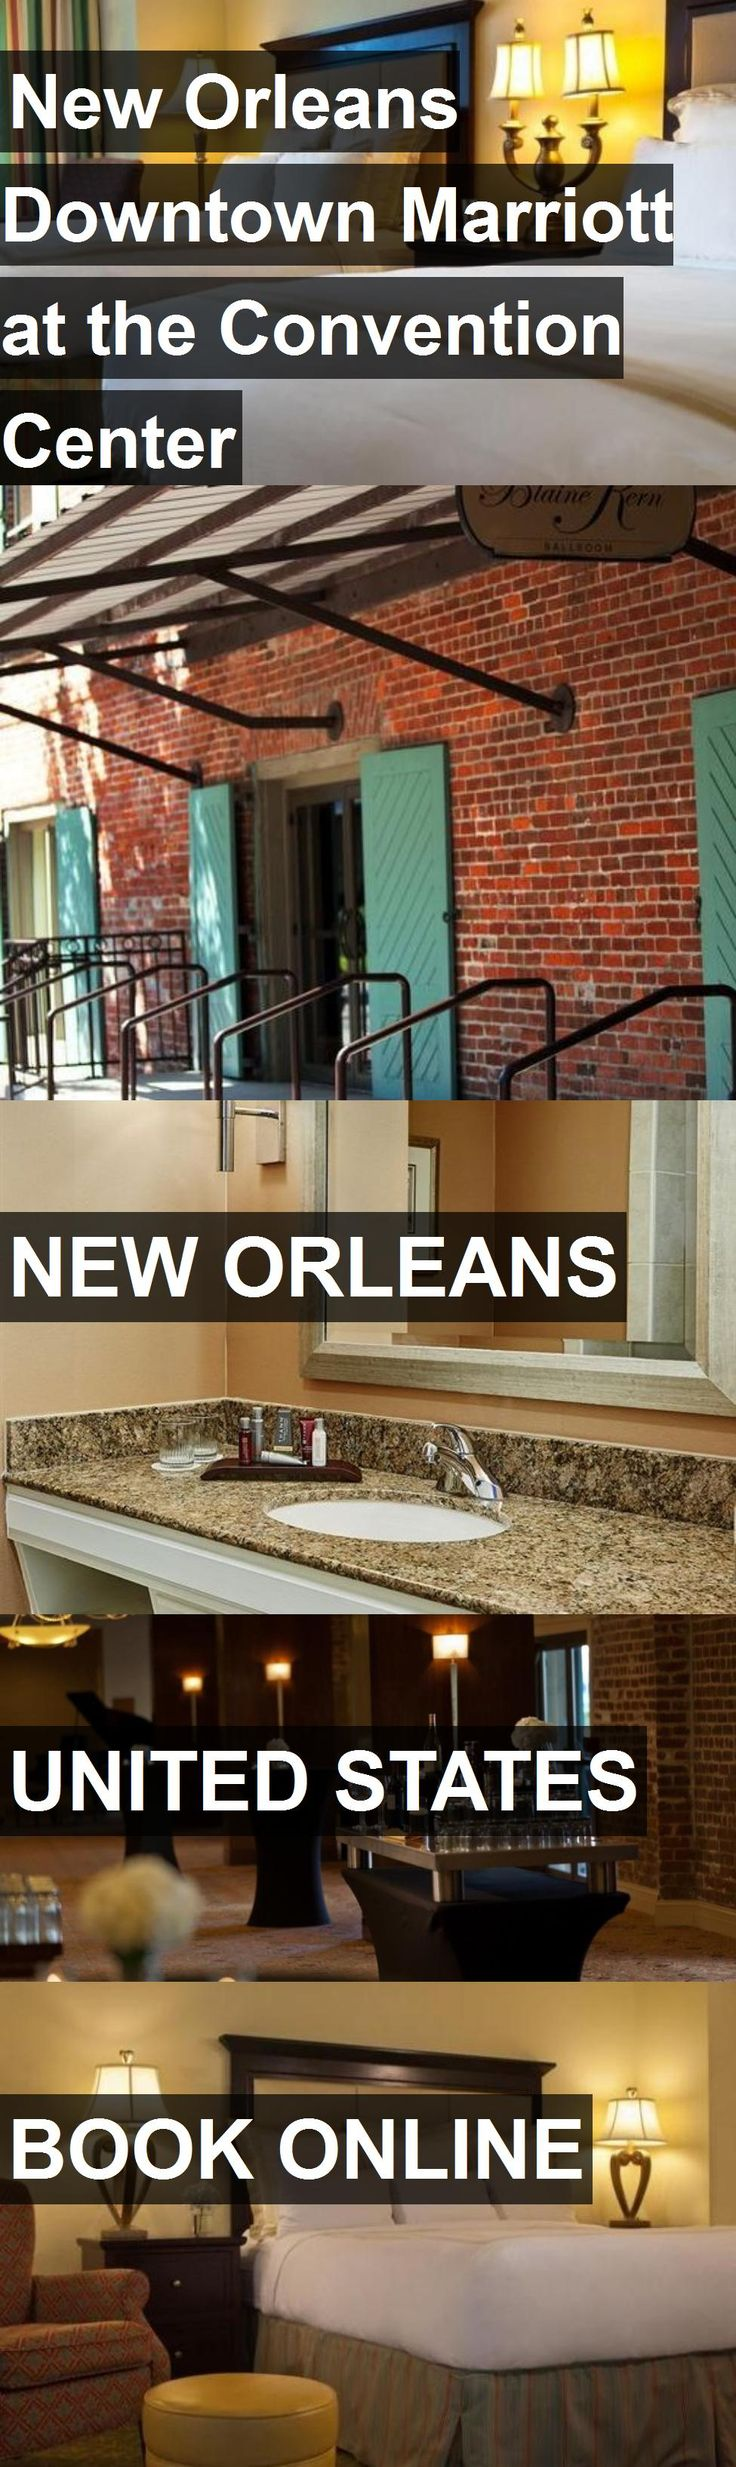 Hotel New Orleans Downtown Marriott at the Convention Center in New Orleans, United States. For more information, photos, reviews and best prices please follow the link. #UnitedStates #NewOrleans #NewOrleansDowntownMarriottattheConventionCenter #hotel #travel #vacation